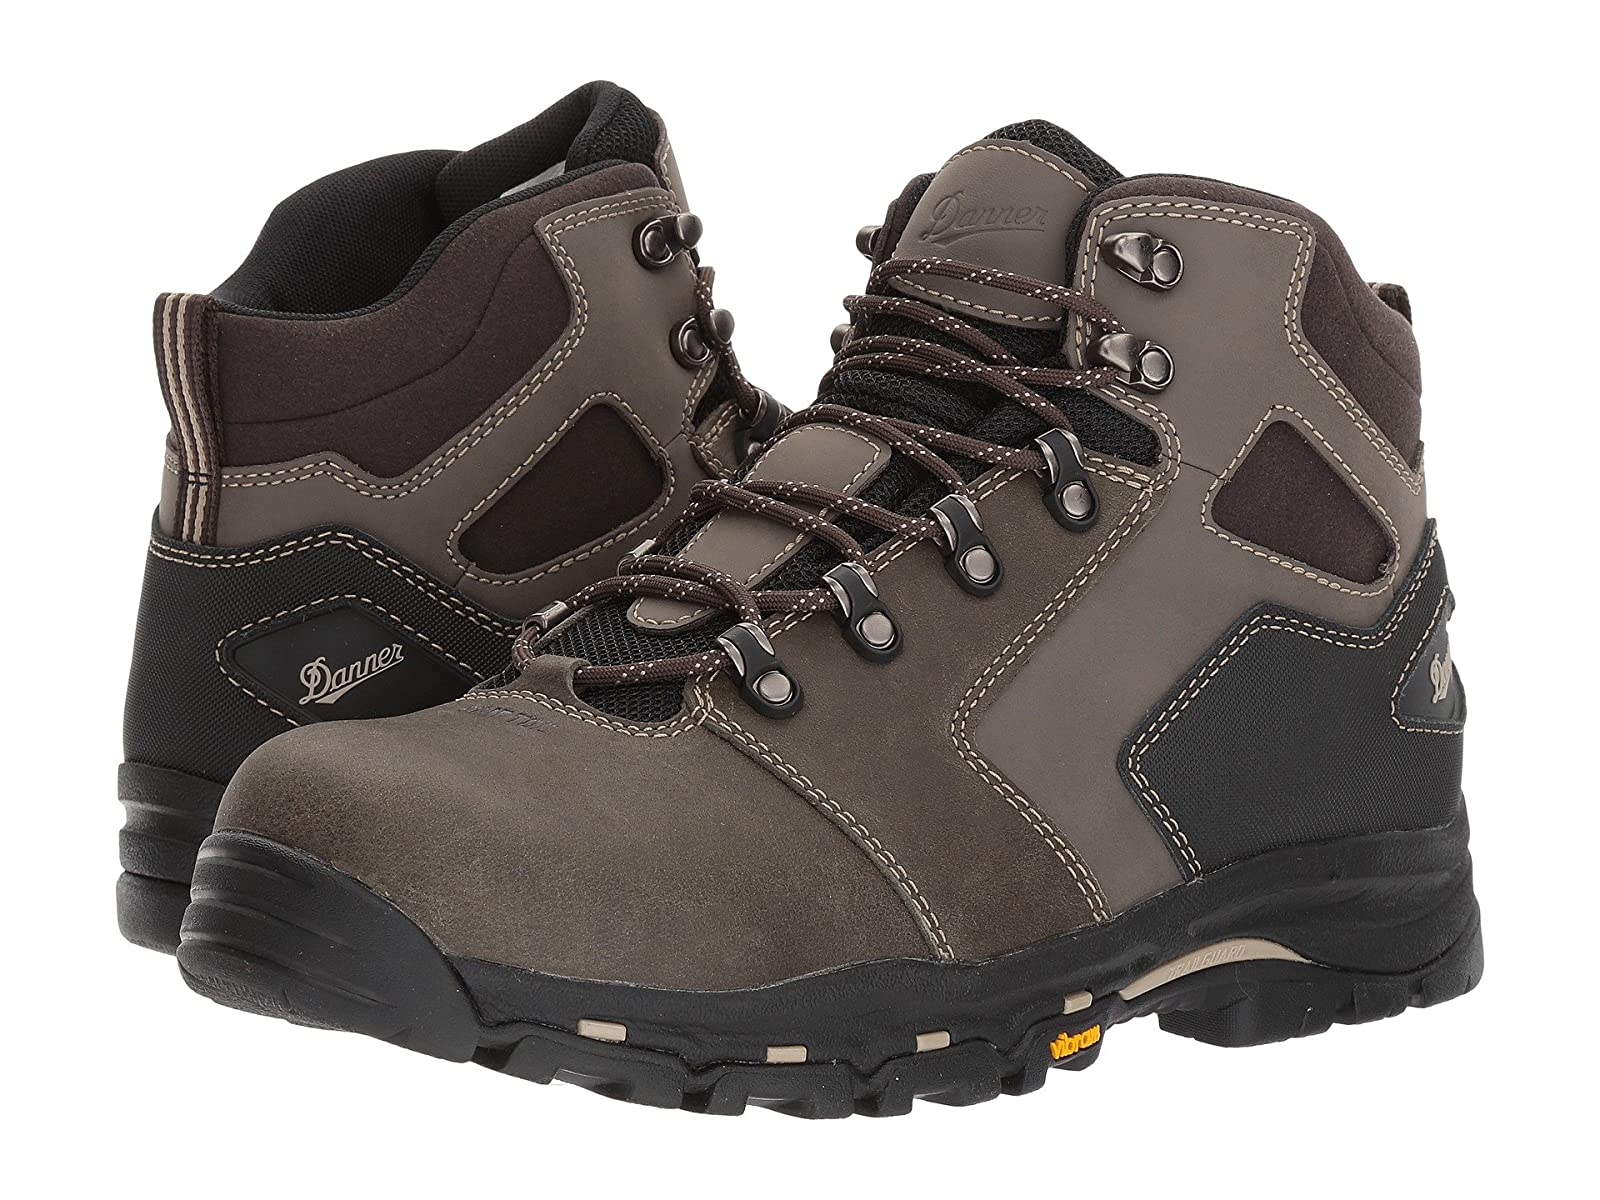 """Danner Vicious 4.5"""" Hot Weather Non-Metallic Safety ToeAffordable and distinctive shoes"""